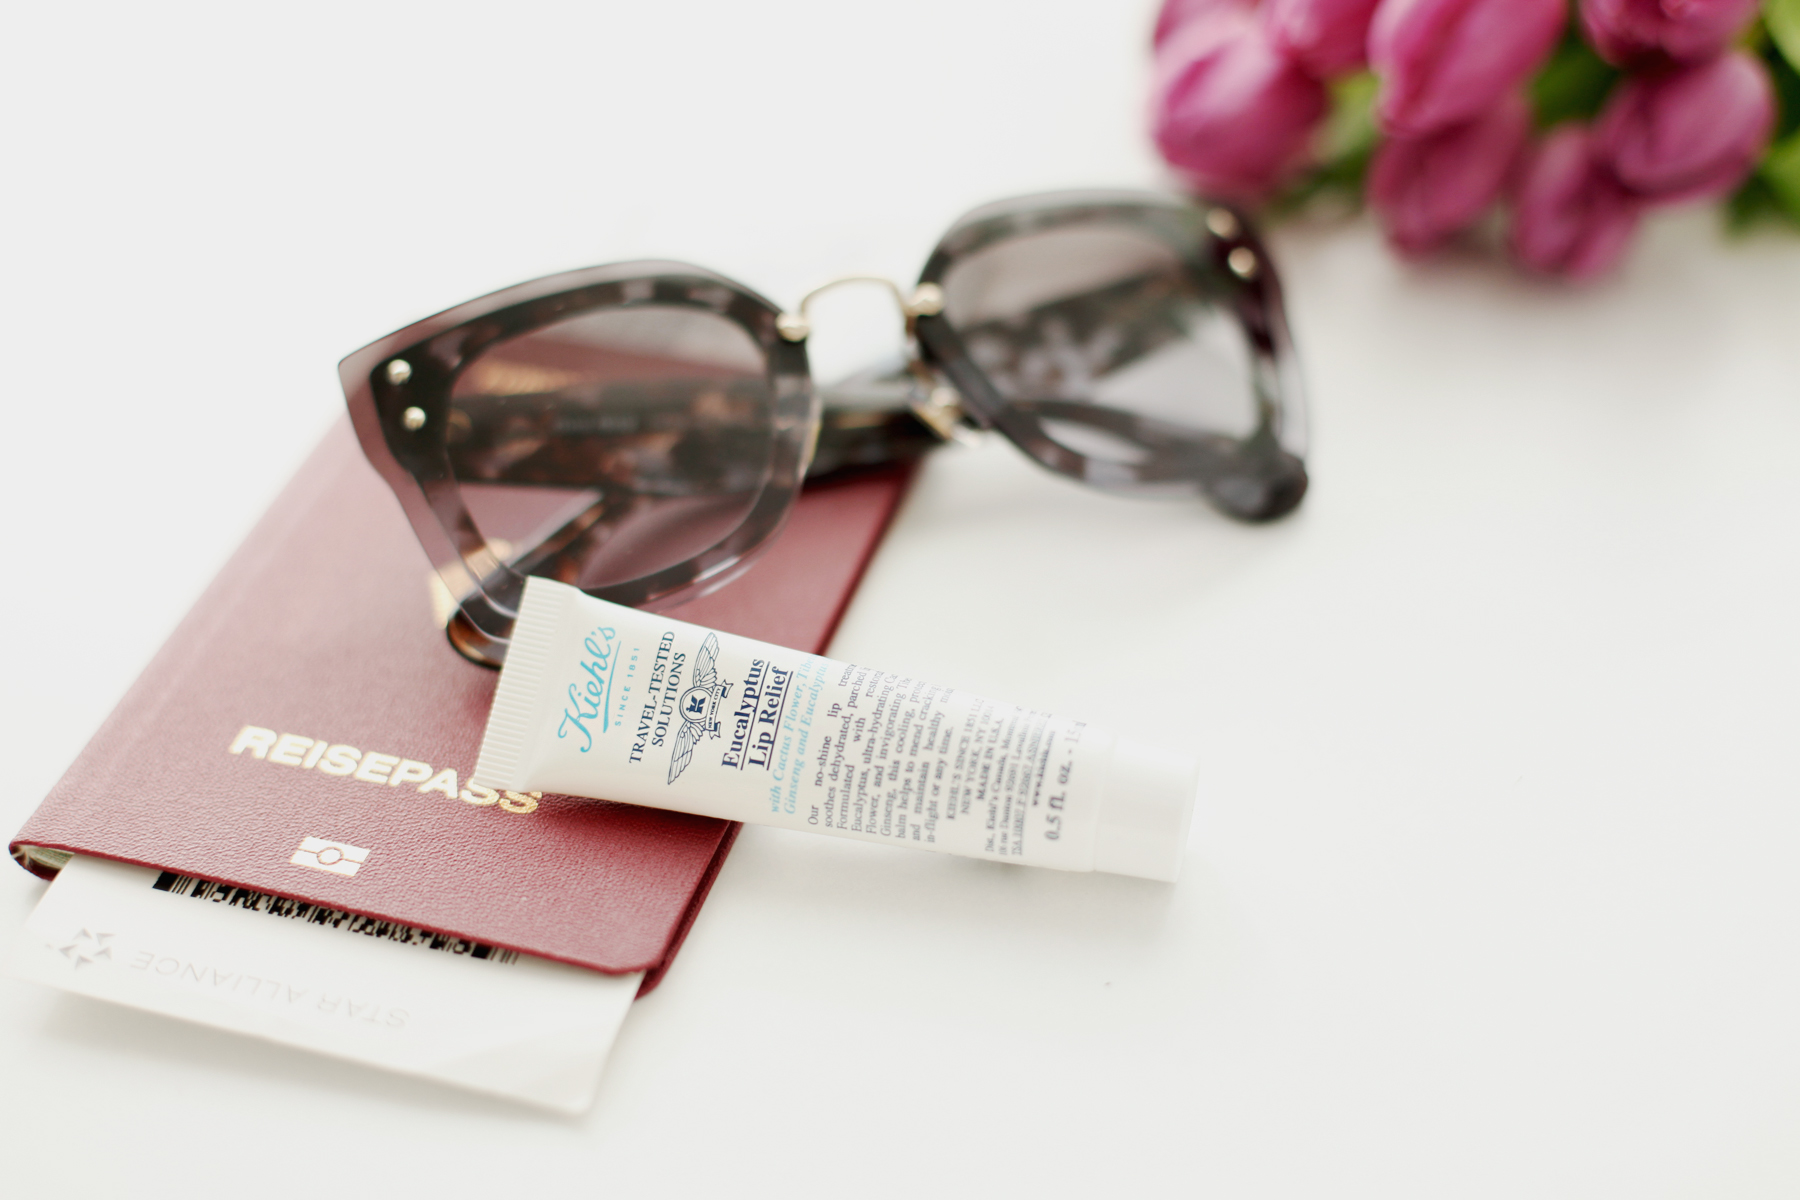 kiehl's travel essentials reise new york city world of kiehl's travelling miniature beauty beautyblogger handgepäck hand luggage sunglasses miu miu beauty tipps und tricks daily revival cats & dogs ricarda schernus beautyblogger düsseldorf 4